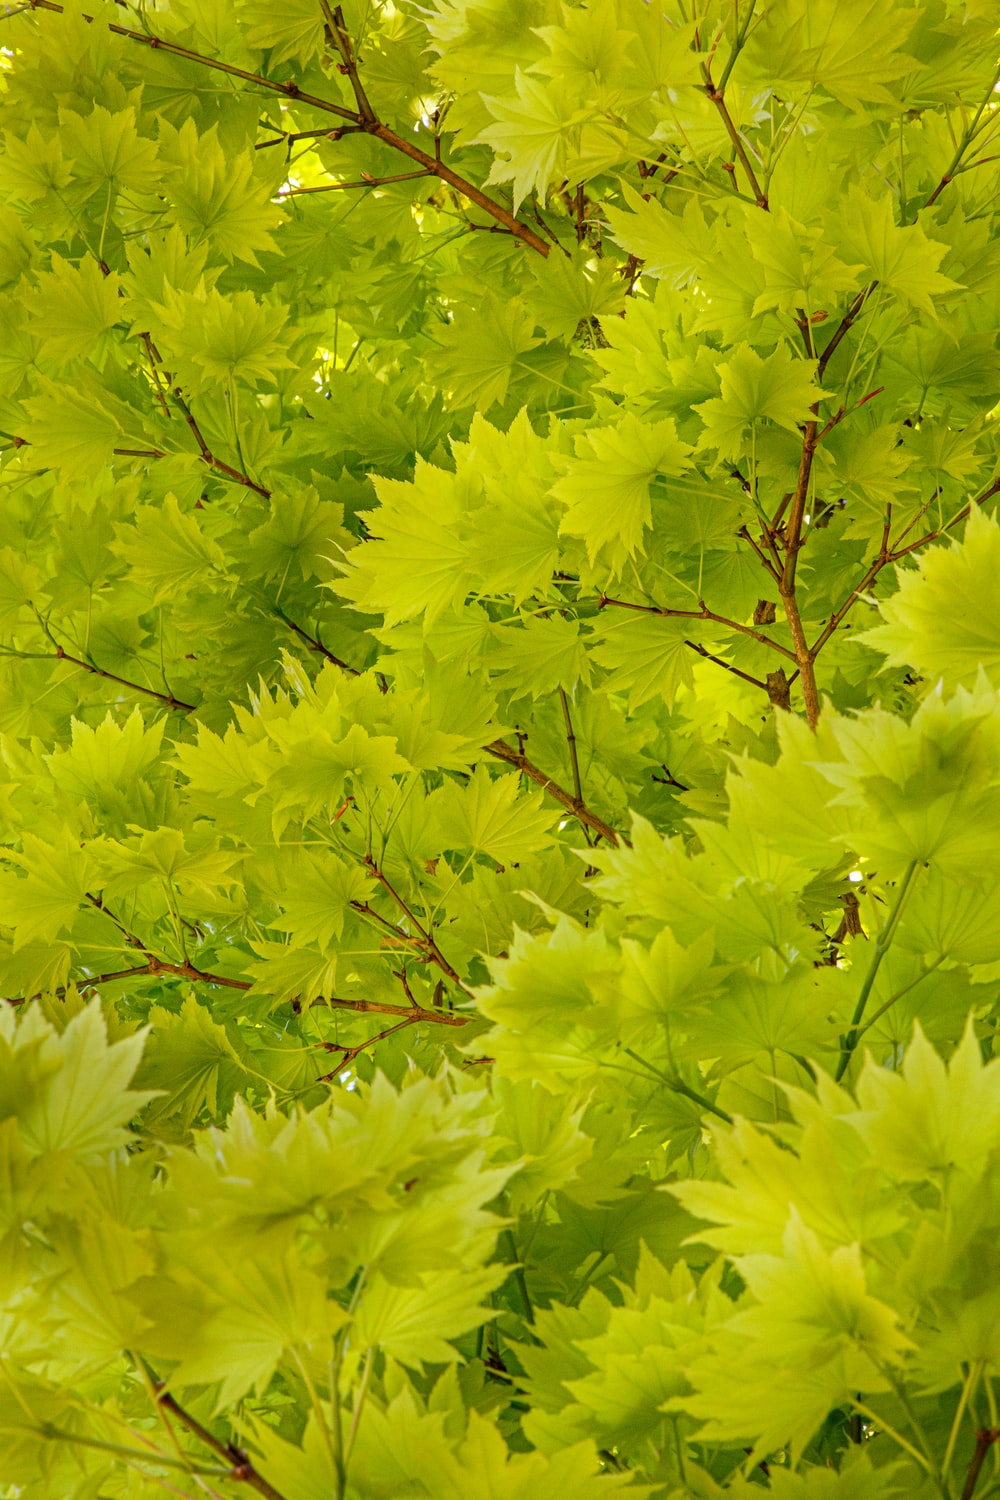 green leaves on brown tree branch